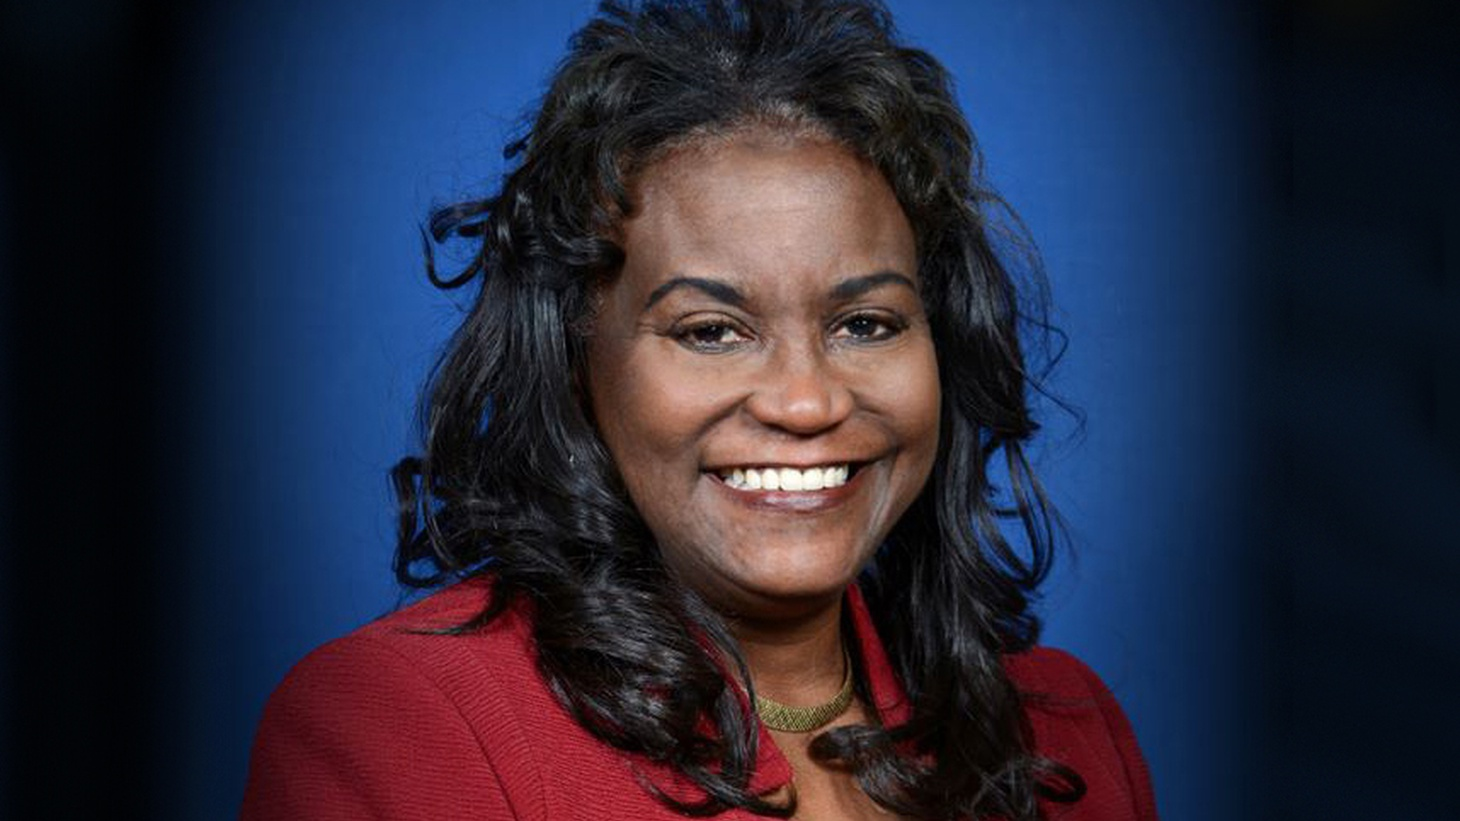 In the search for a new Superintendent, LA's elected school board paid a head-hunting firm to search the nation. Now the search is over — and  the winner is Michelle King . She started out as a student aide at LAUSD, became a teacher, a principal — and finally the chief deputy to the last two superintendents.